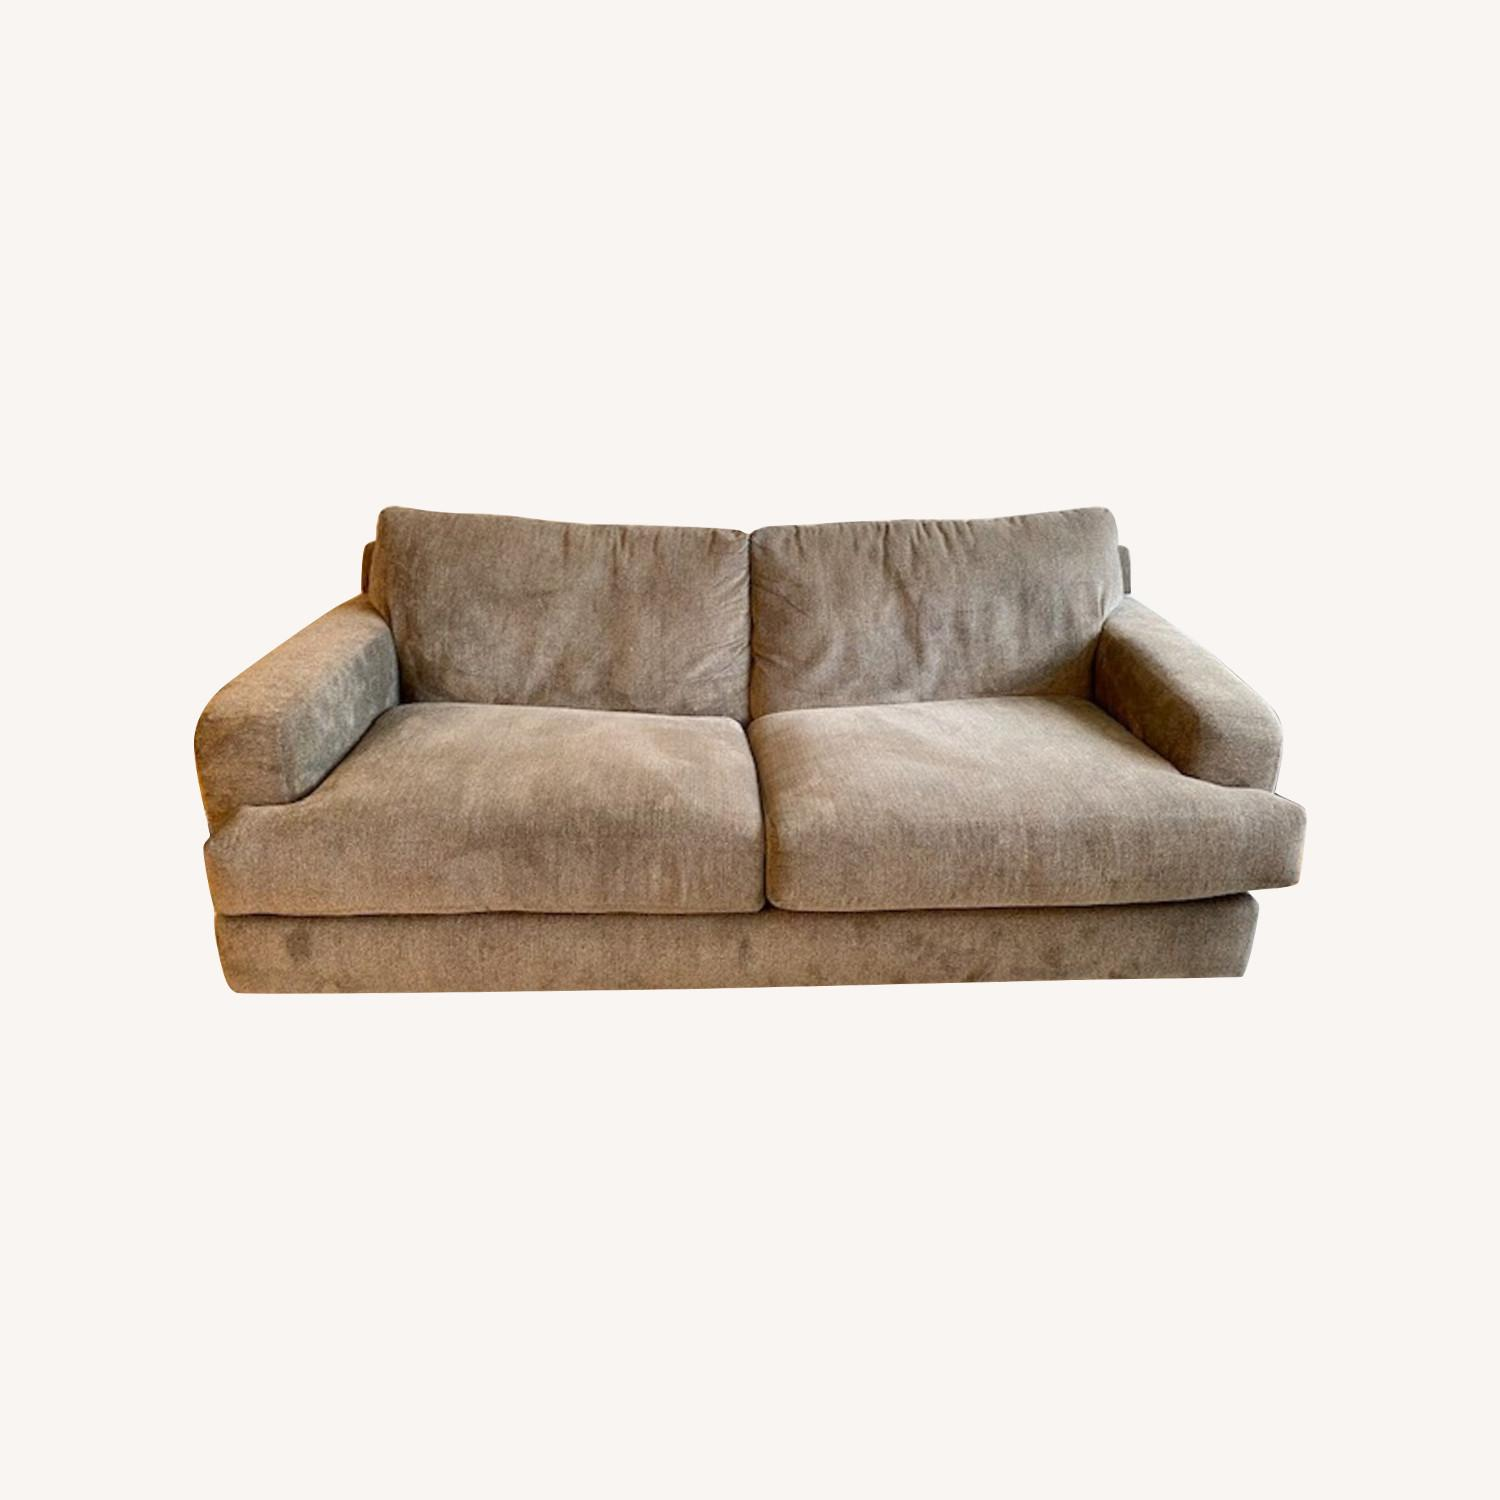 Raymour & Flanigan Grey 2 Seater Sofa - image-0